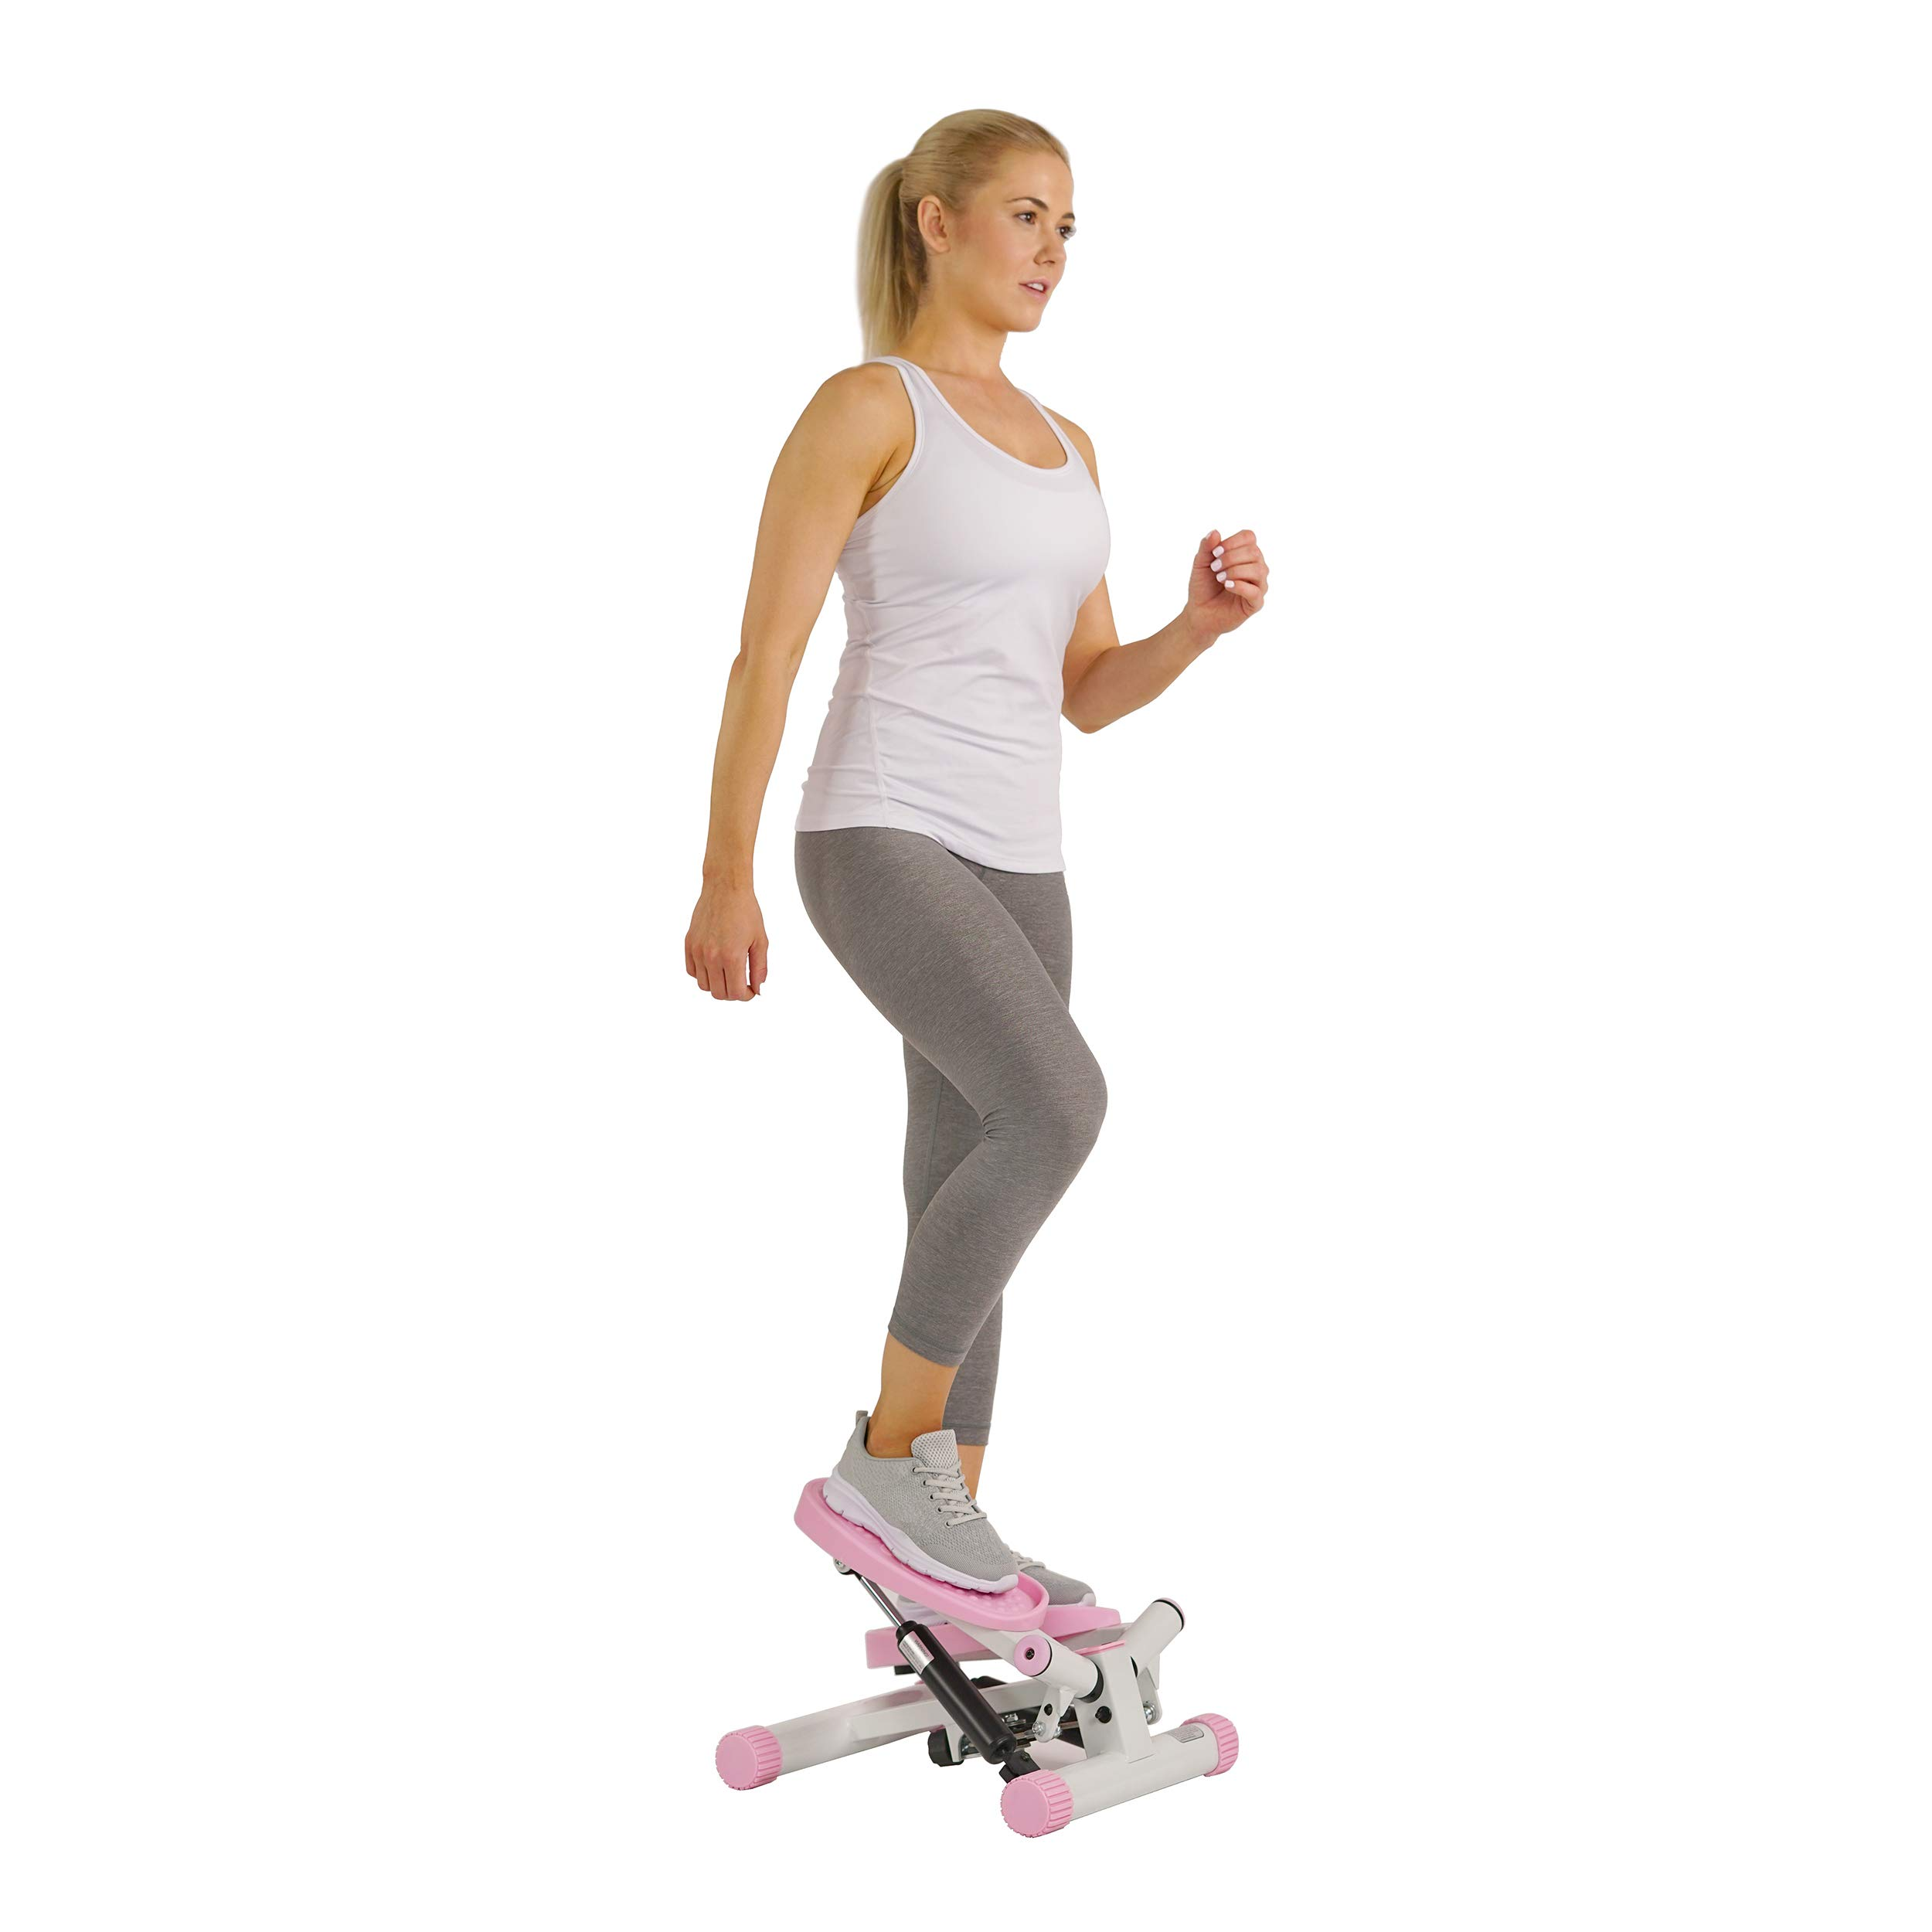 Sunny Health and Fitness Adjustable Mini Stair Stepper Exercise Equipment Step Machine with Twisting Action, Pink by Sunny Health & Fitness